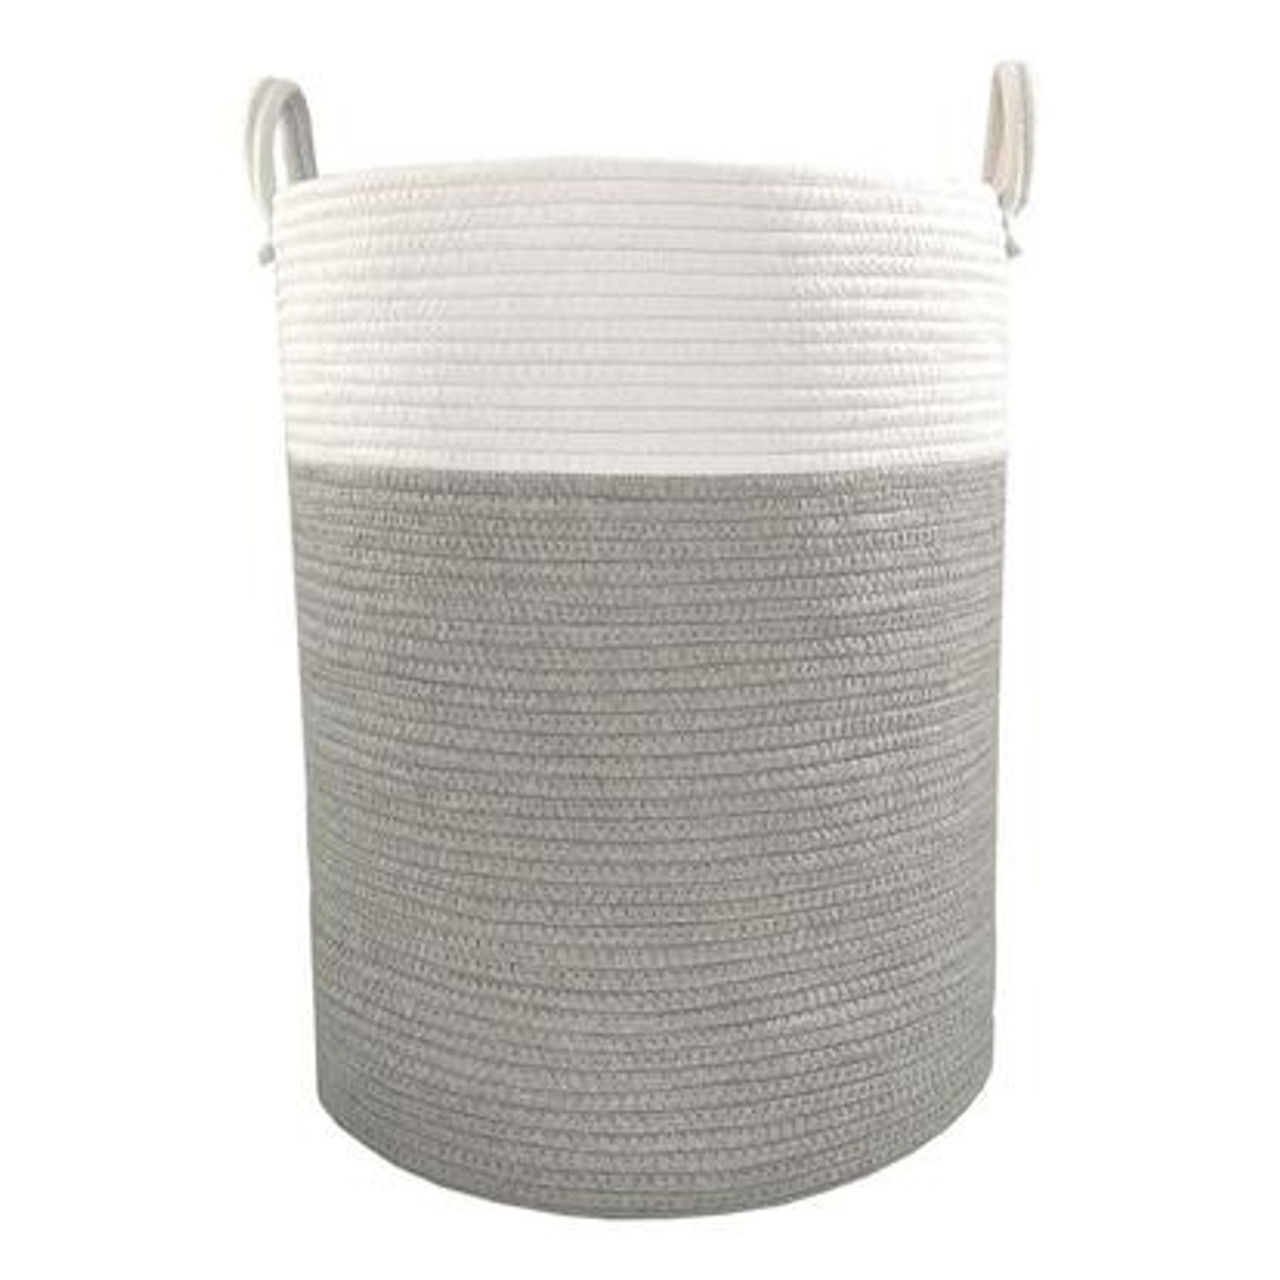 Living Textiles 100% Cotton Rope Hamper at Baby Barn Discounts